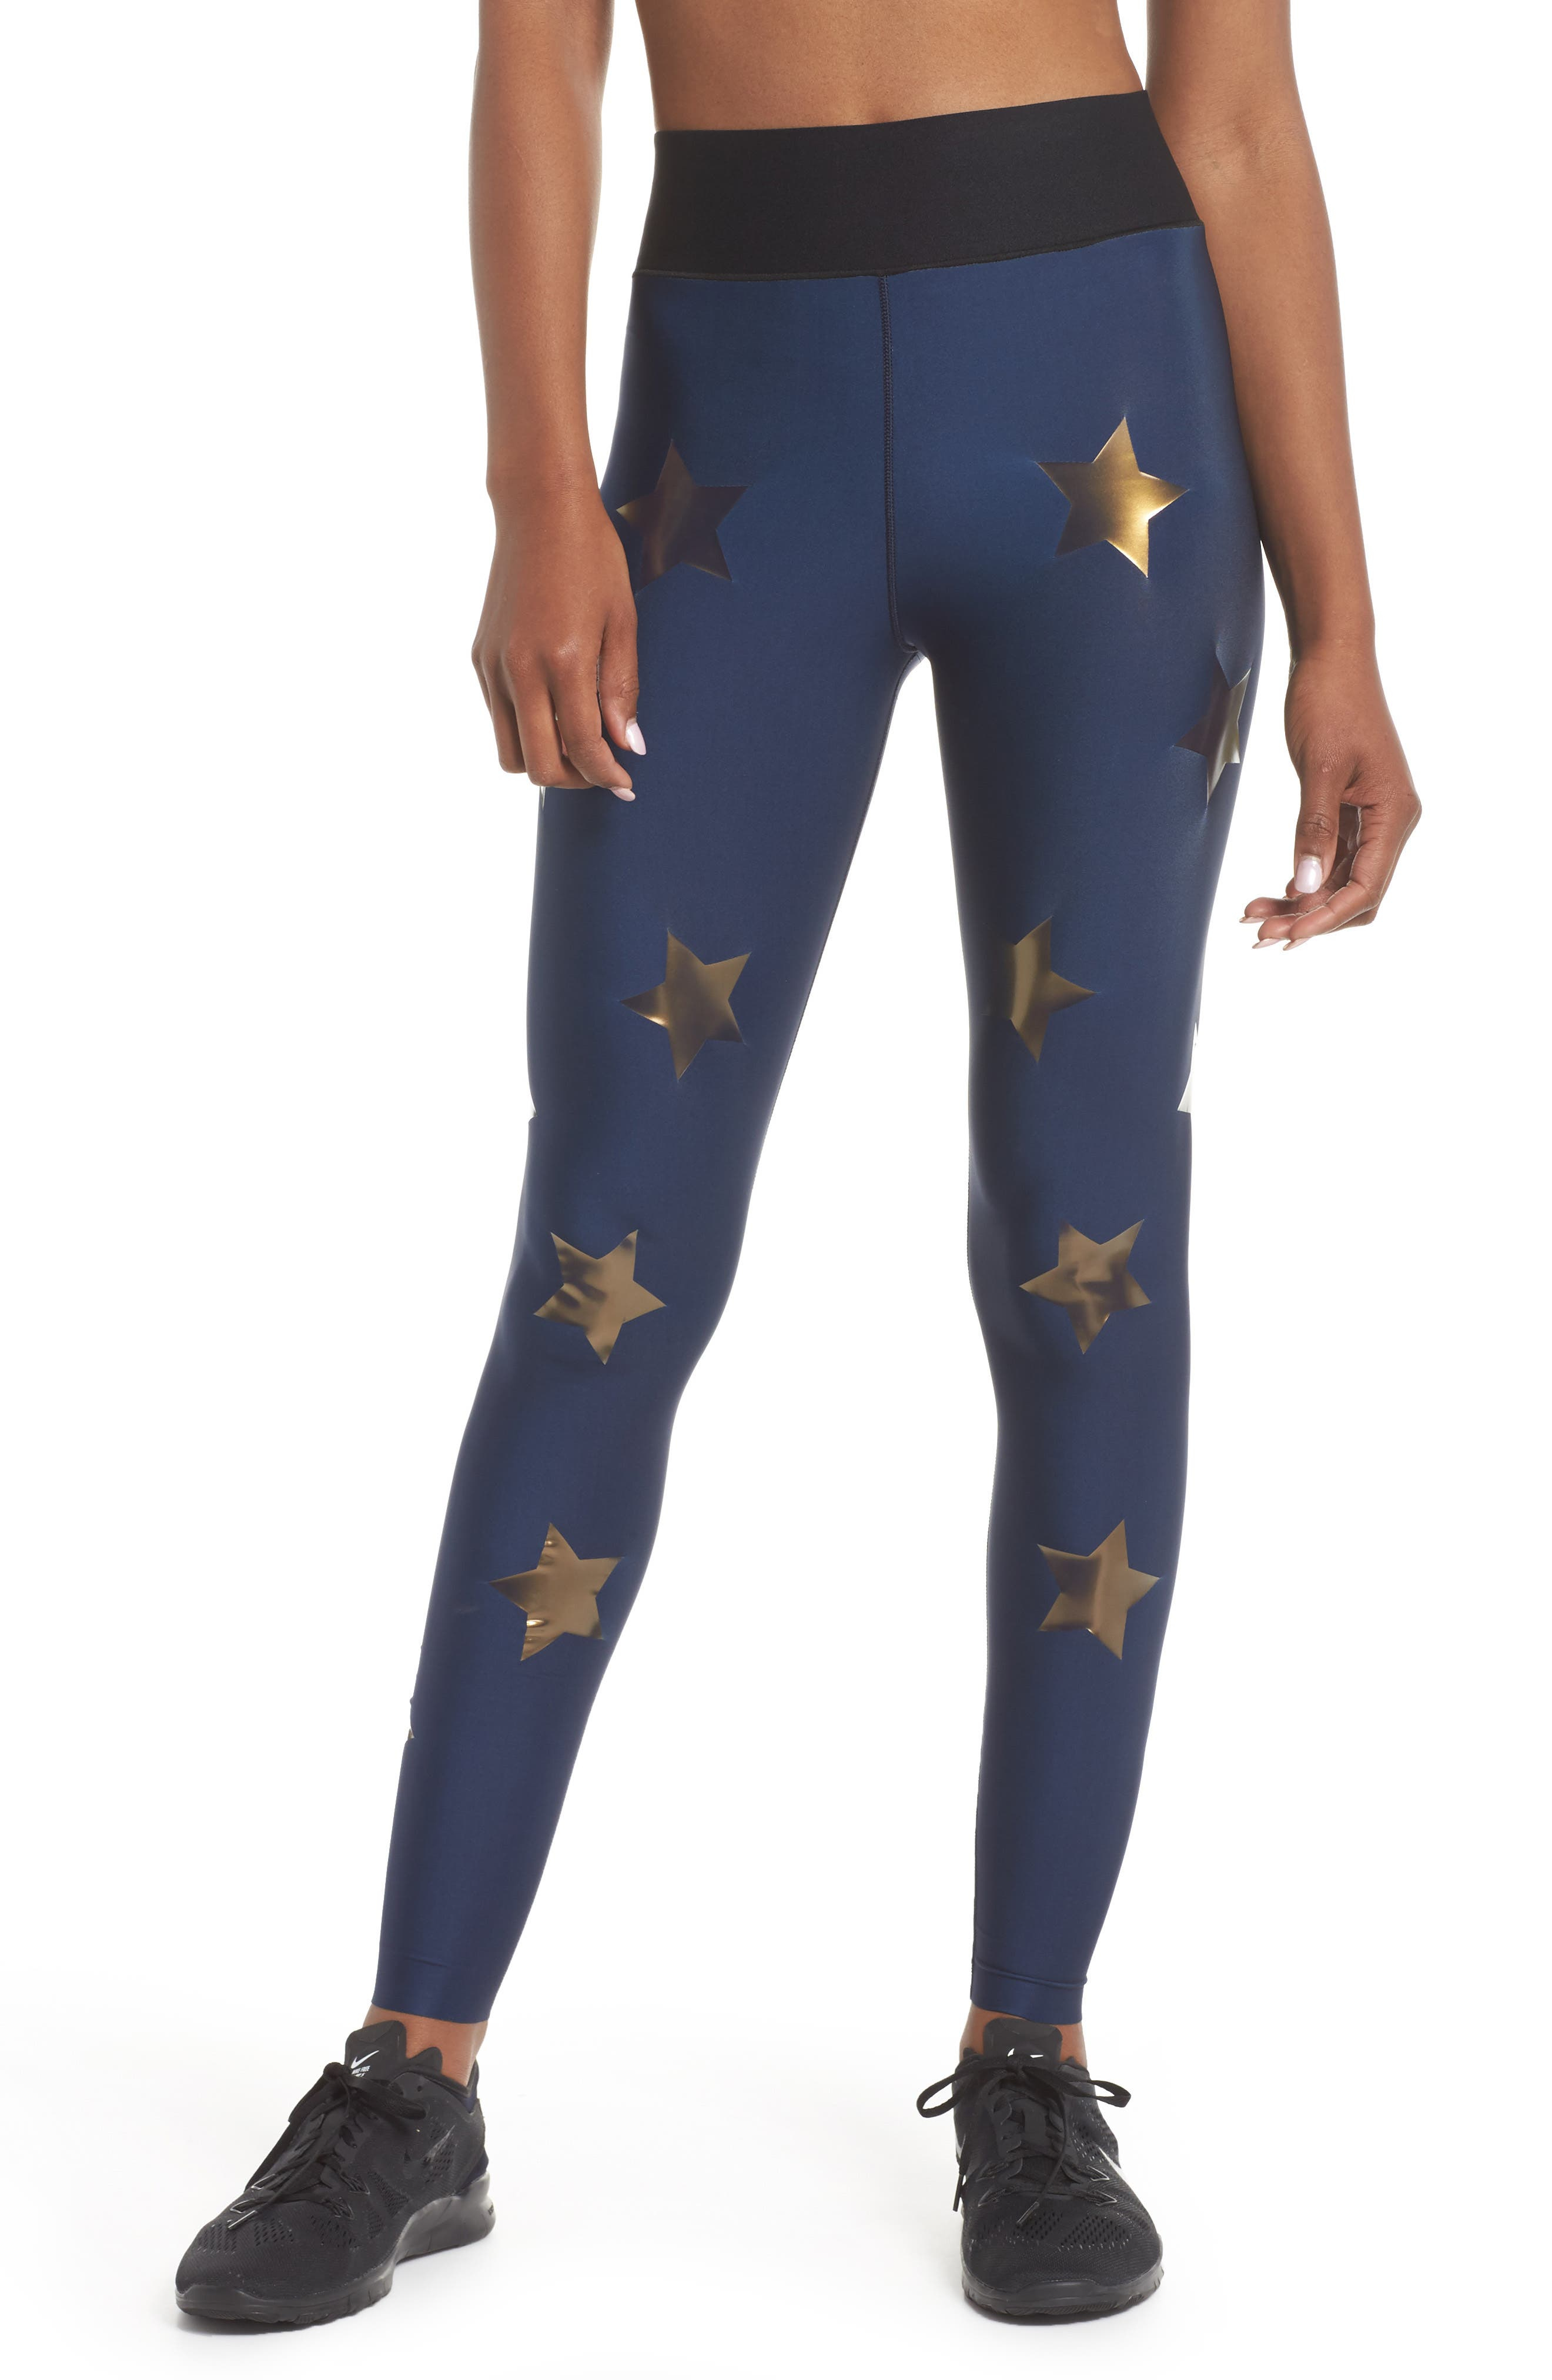 Lux Knockout Leggings,                             Main thumbnail 1, color,                             Obig - Oxford Blue Gold